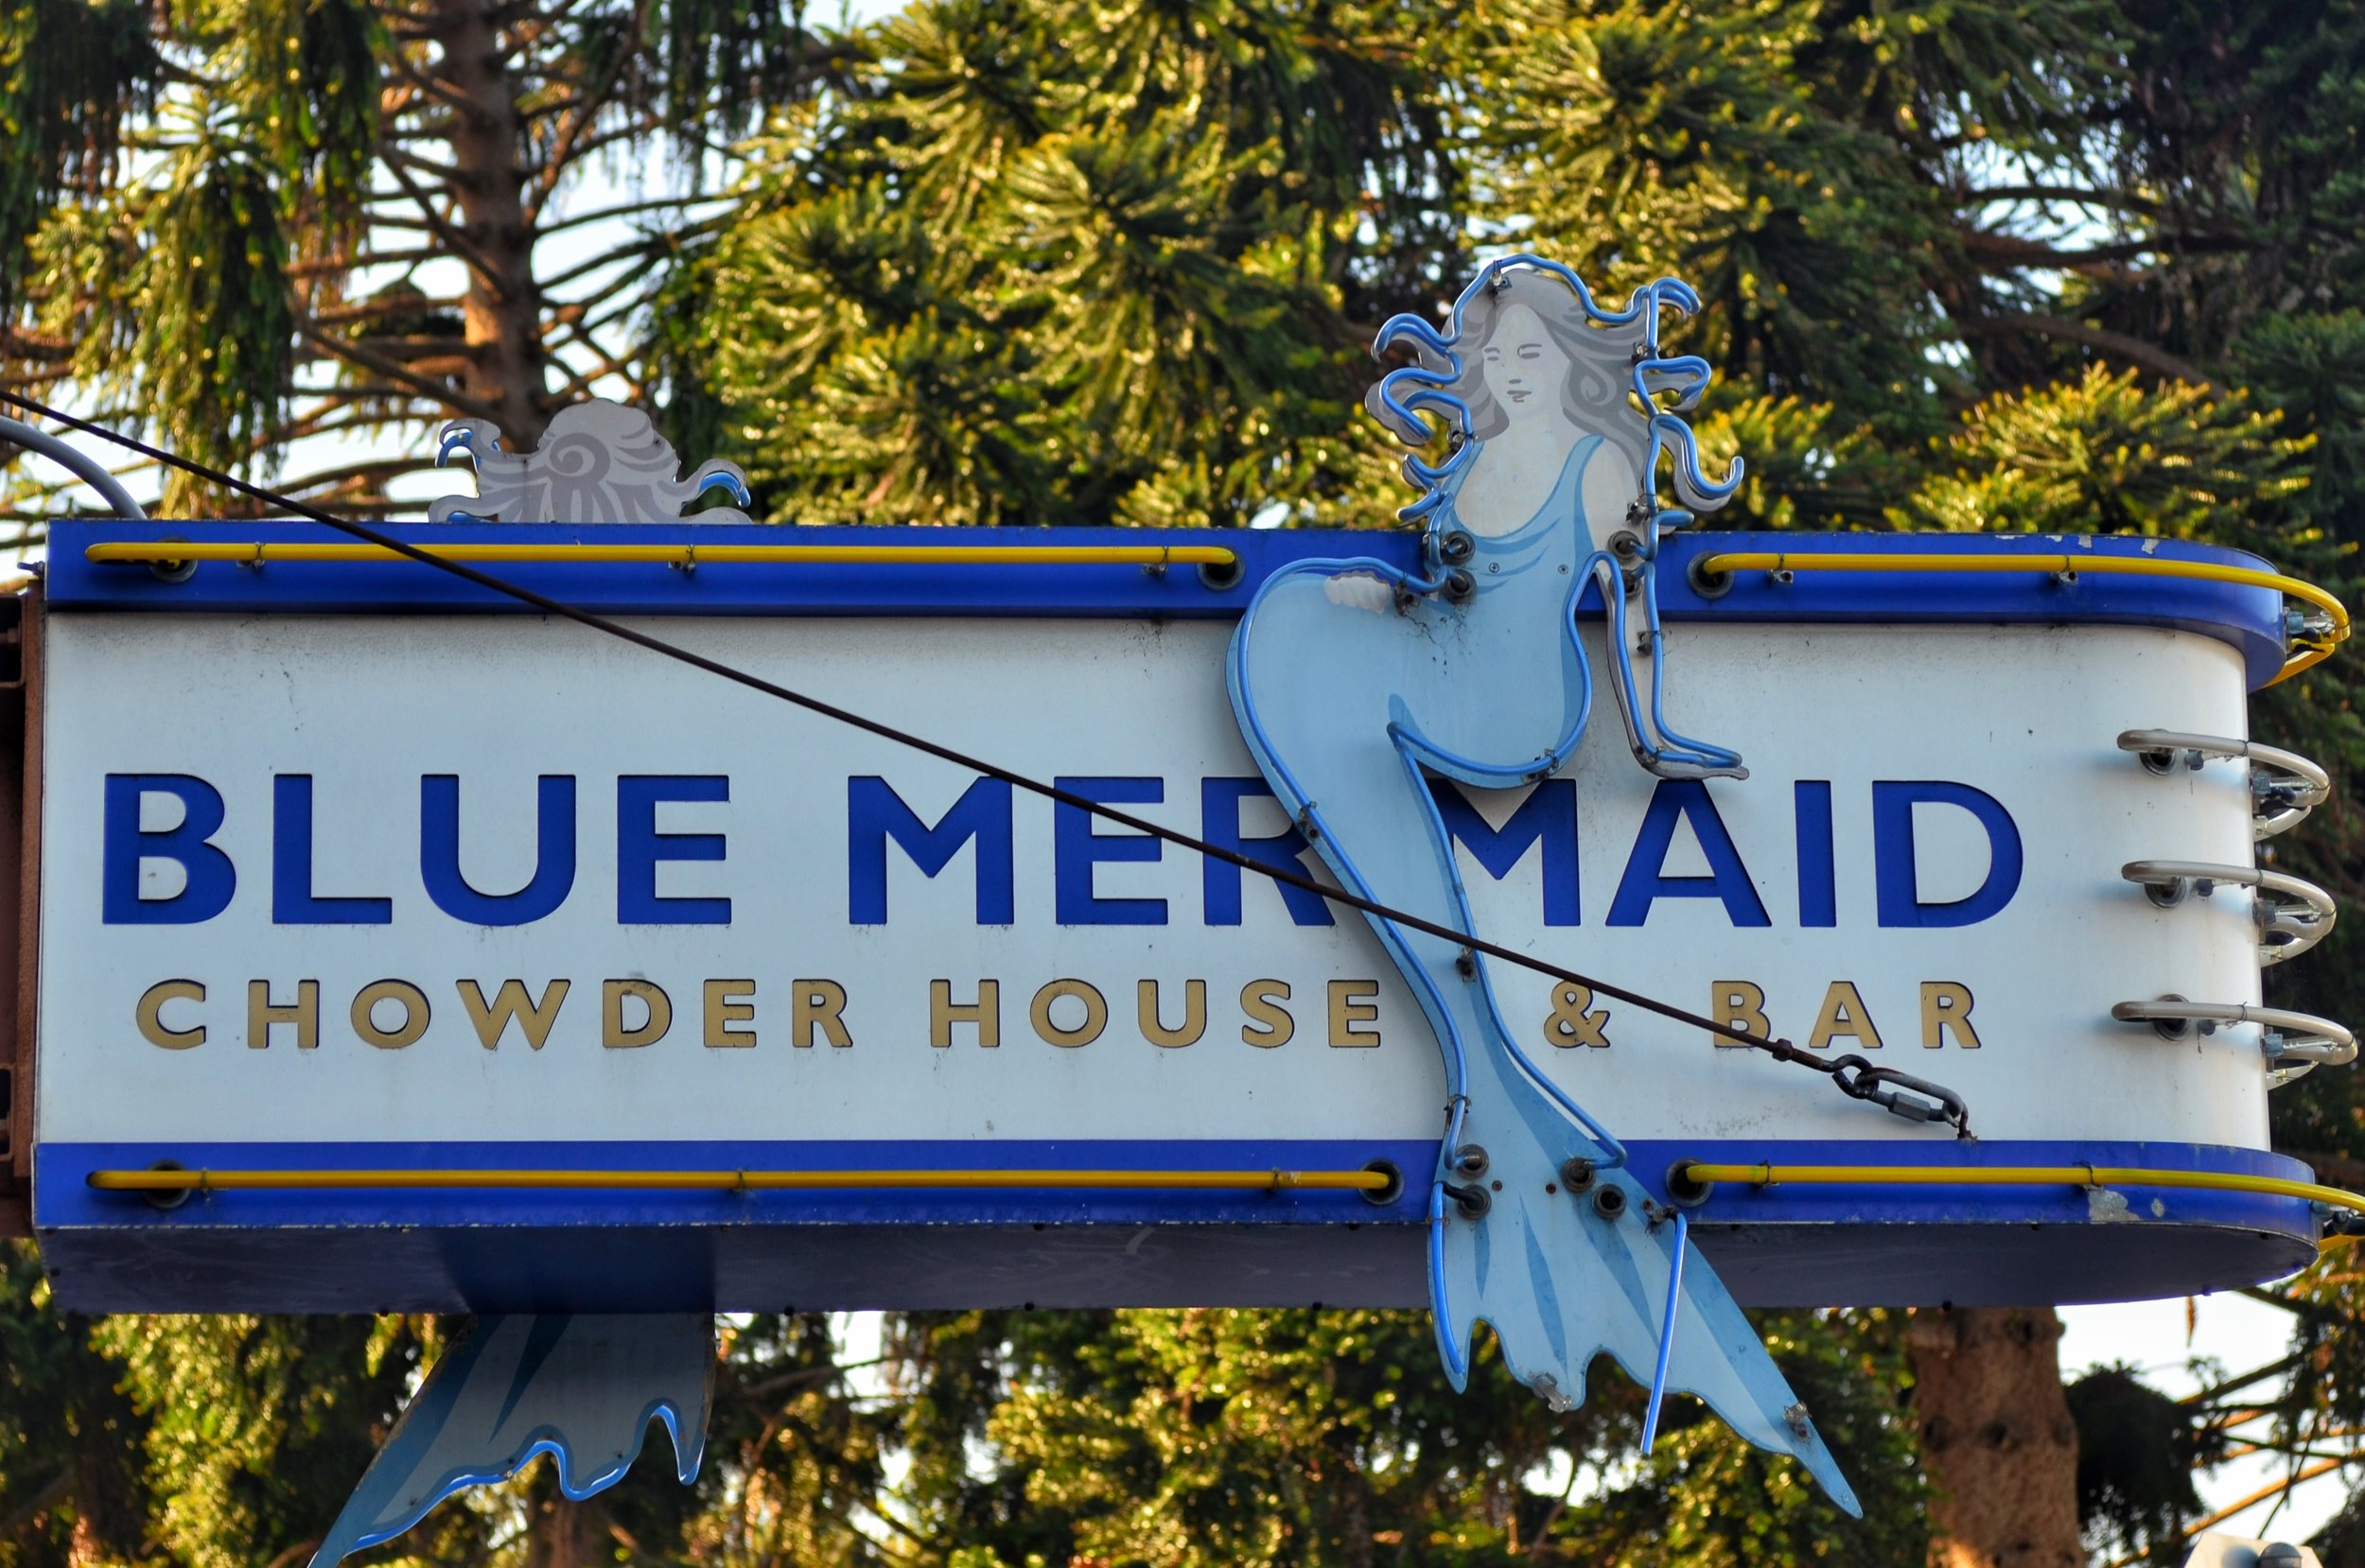 Neon sign for Blue Mermaid Chowder House and Bar located in the Argonaut hotel in Fisherman's Wharf because I love Neon Signs!